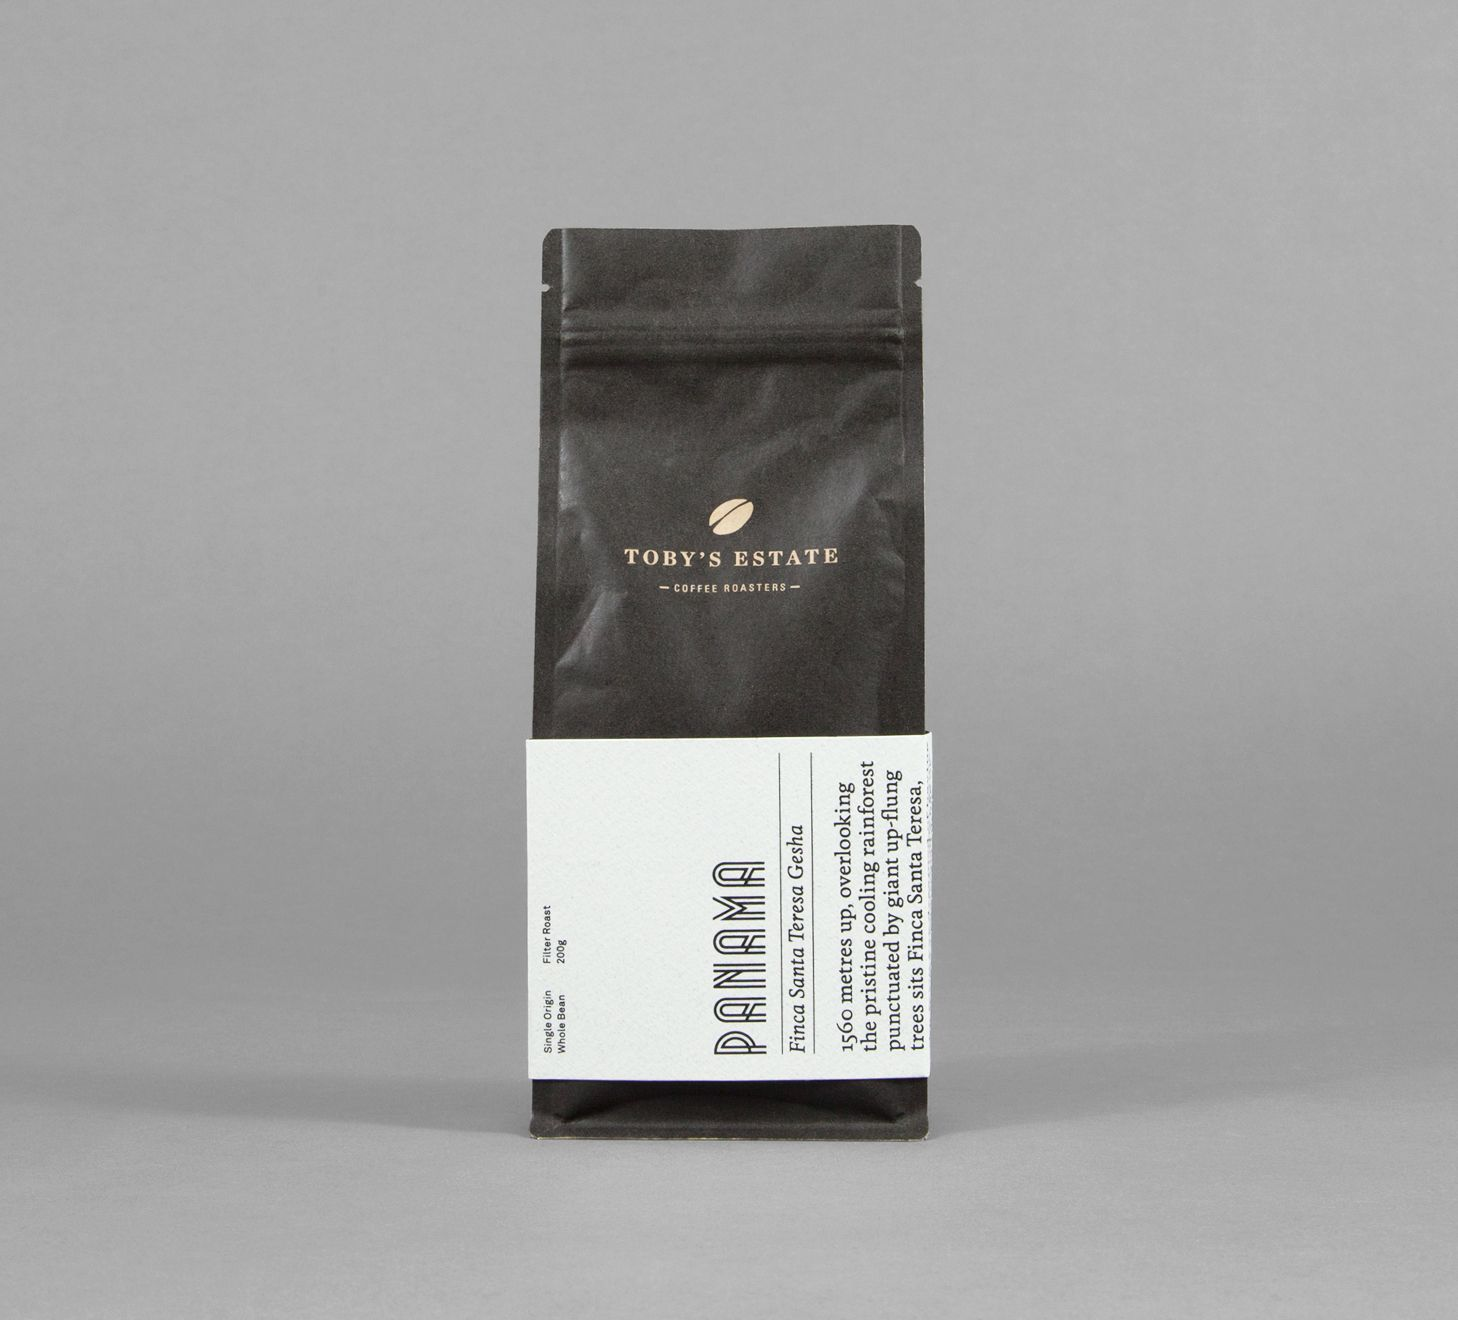 Pin By Rich Baird On Packaging Design Beer Packaging Coffee Design Coffee Packaging